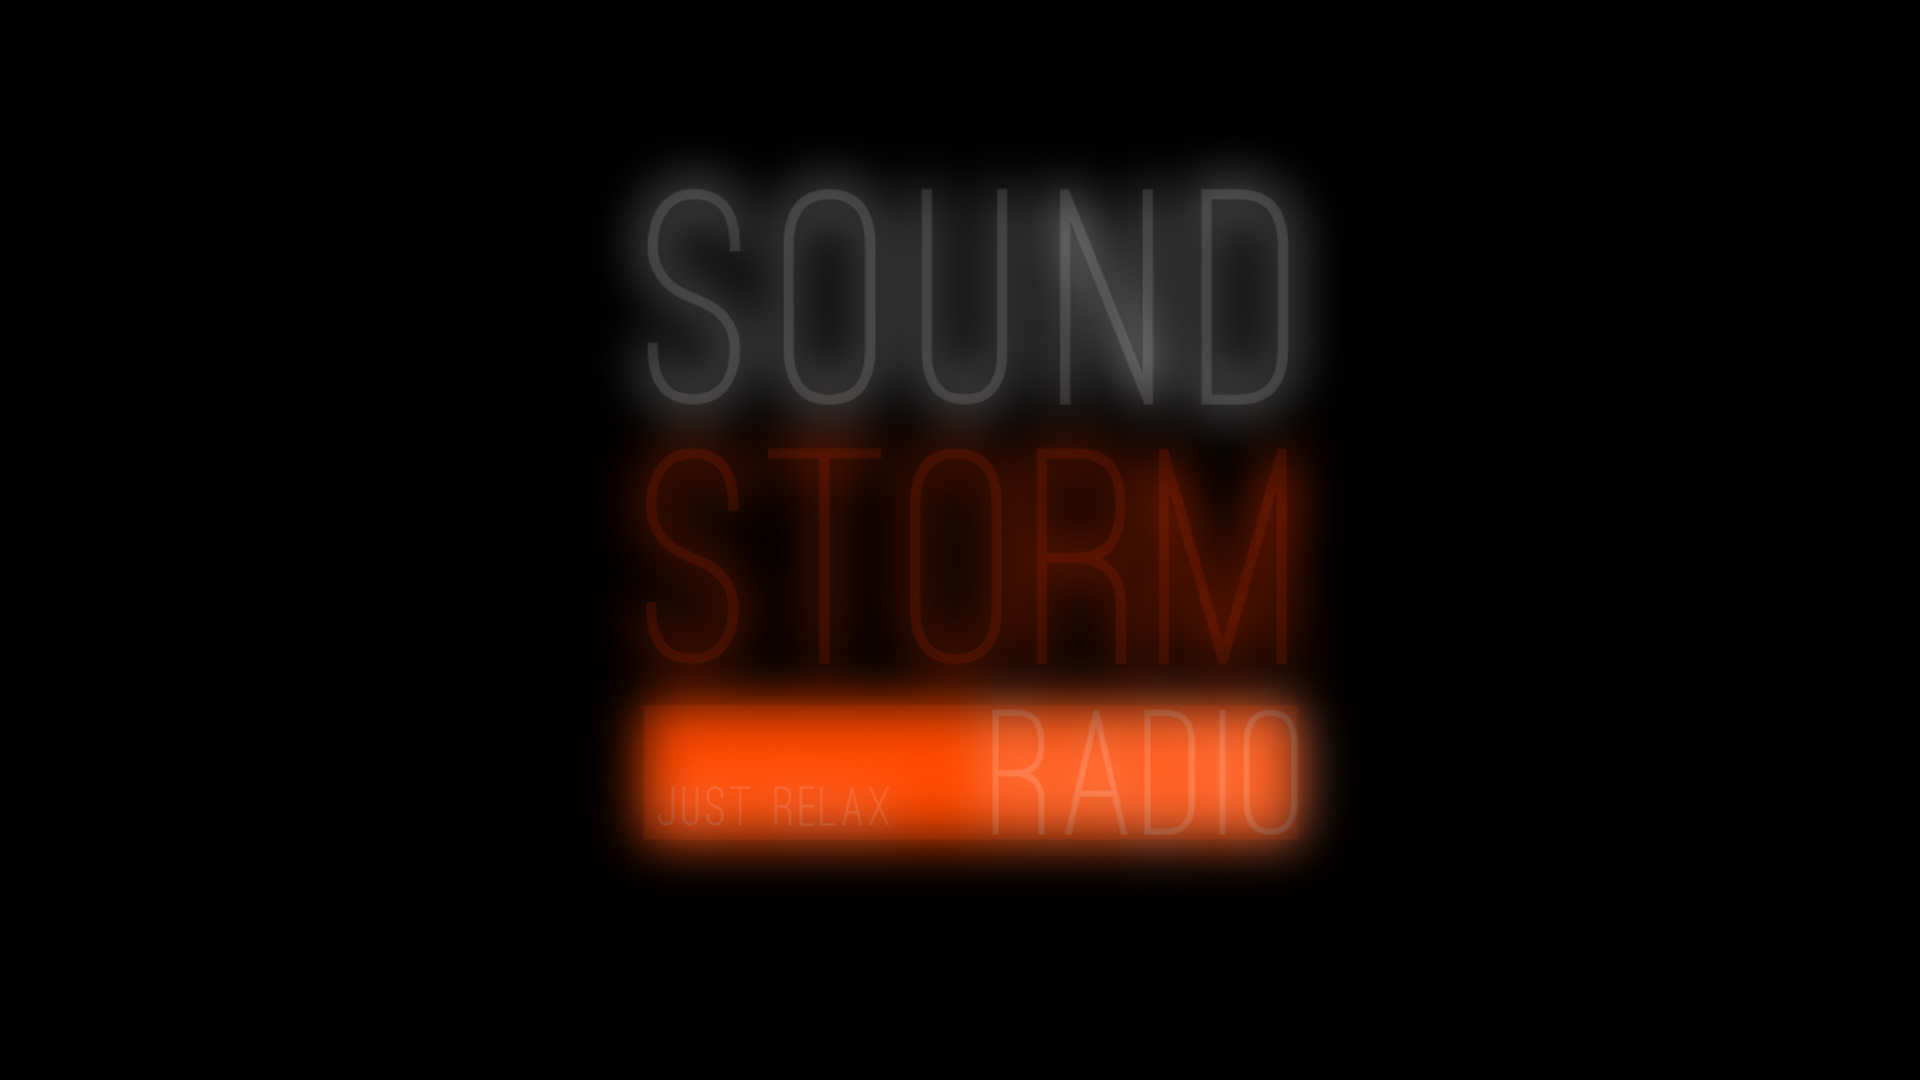 SoundStorm links